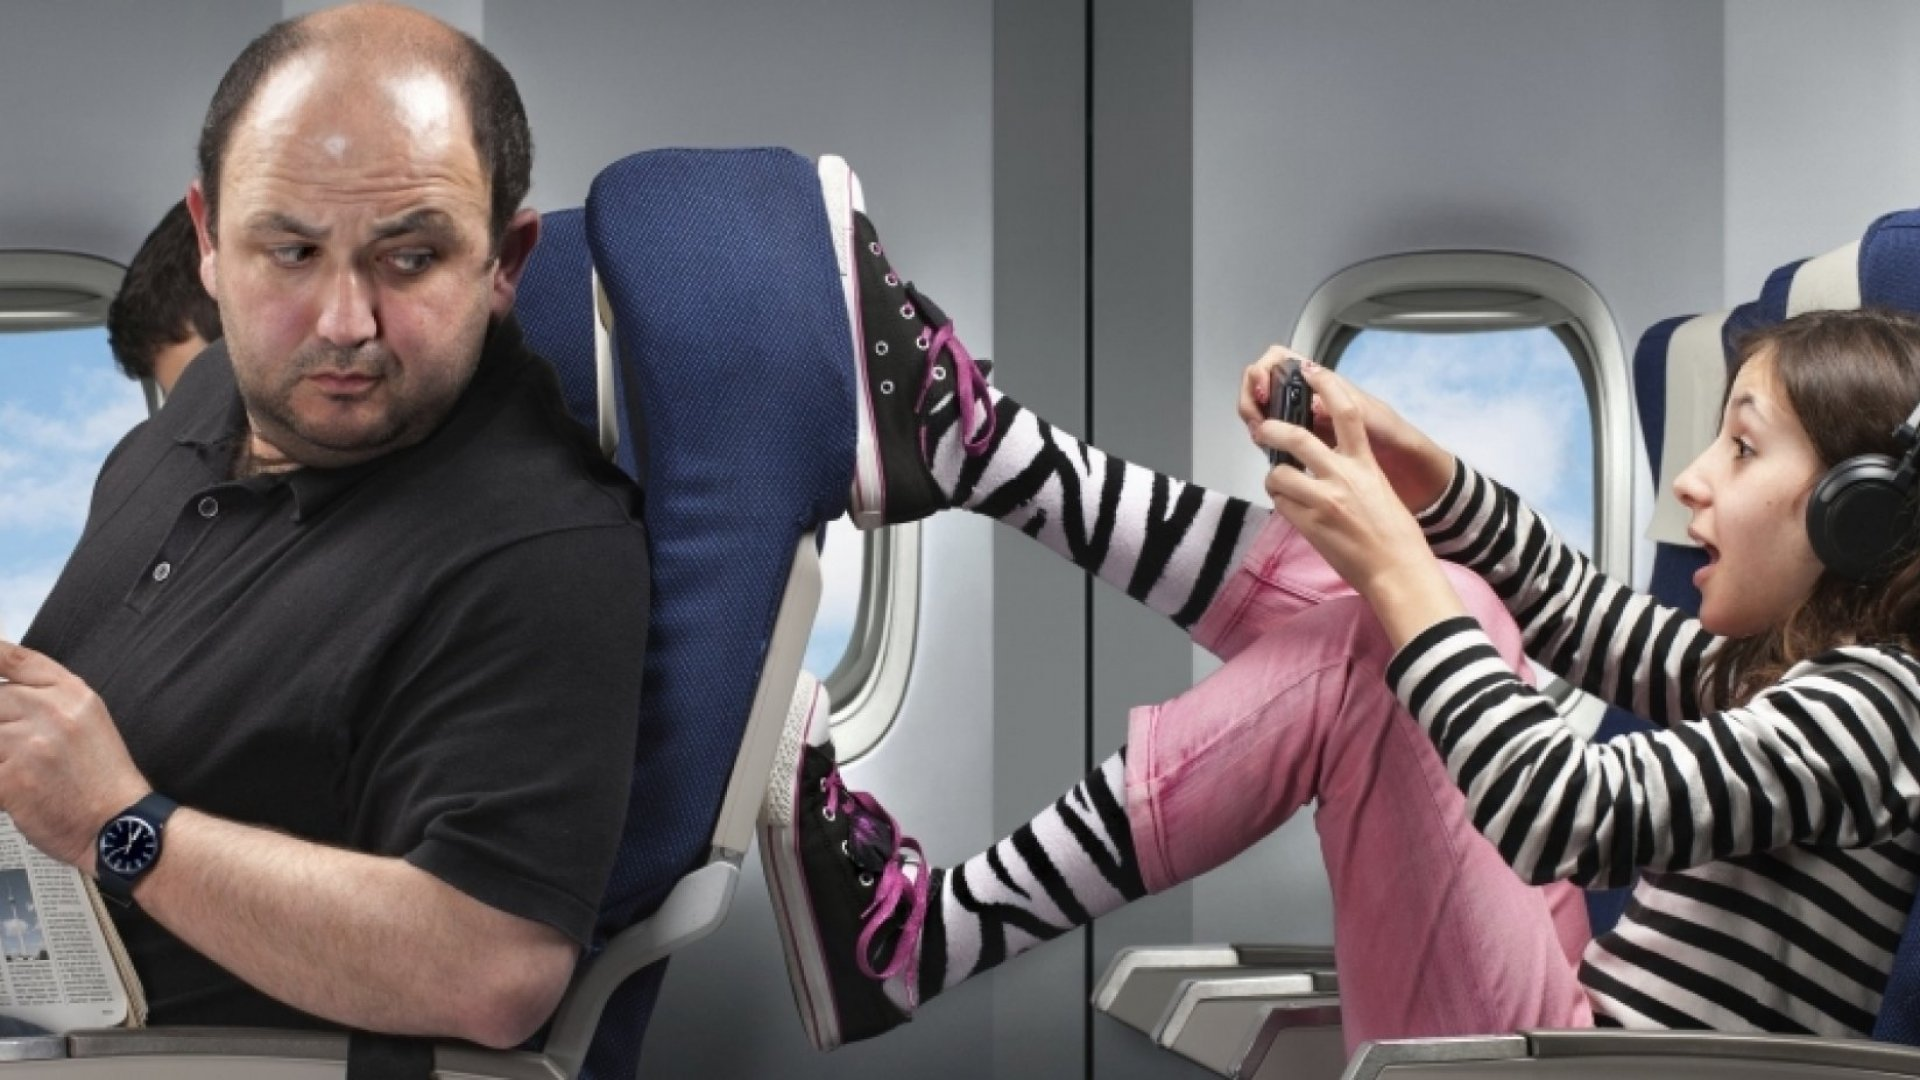 Breaking News: Airlines Find New Ways to Make You Miserable